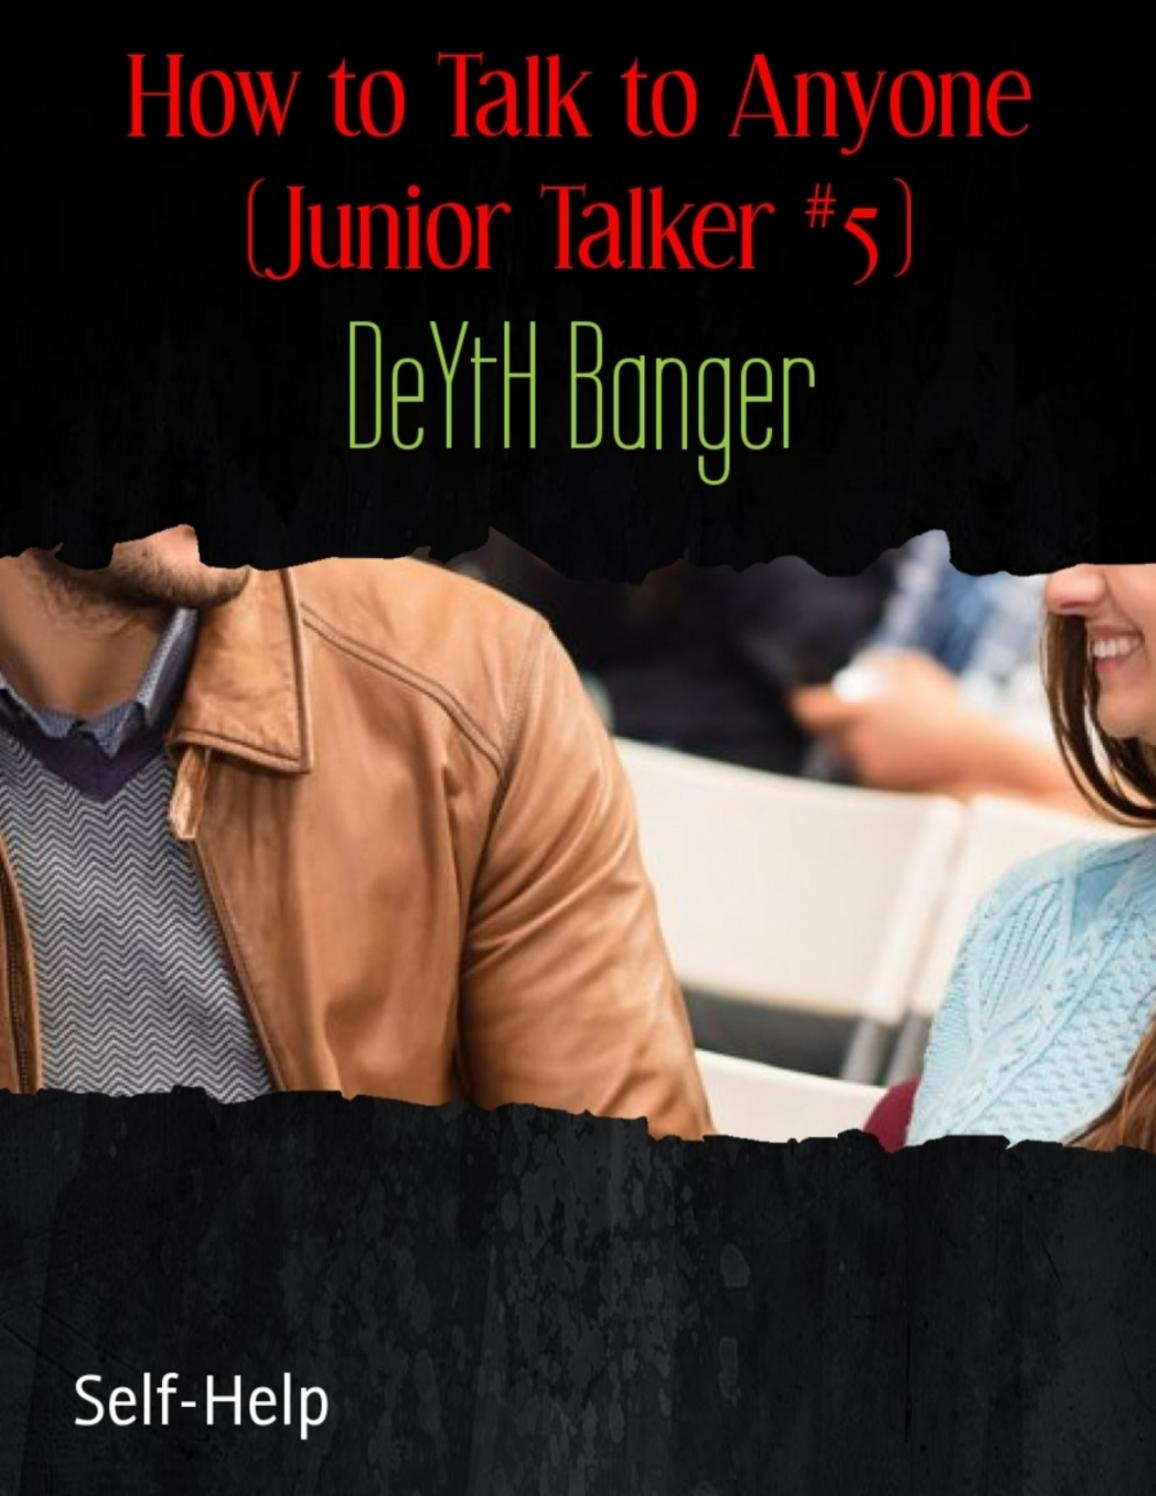 DeYtH Banger How to Talk to Anyone (Junior Talker #5) by